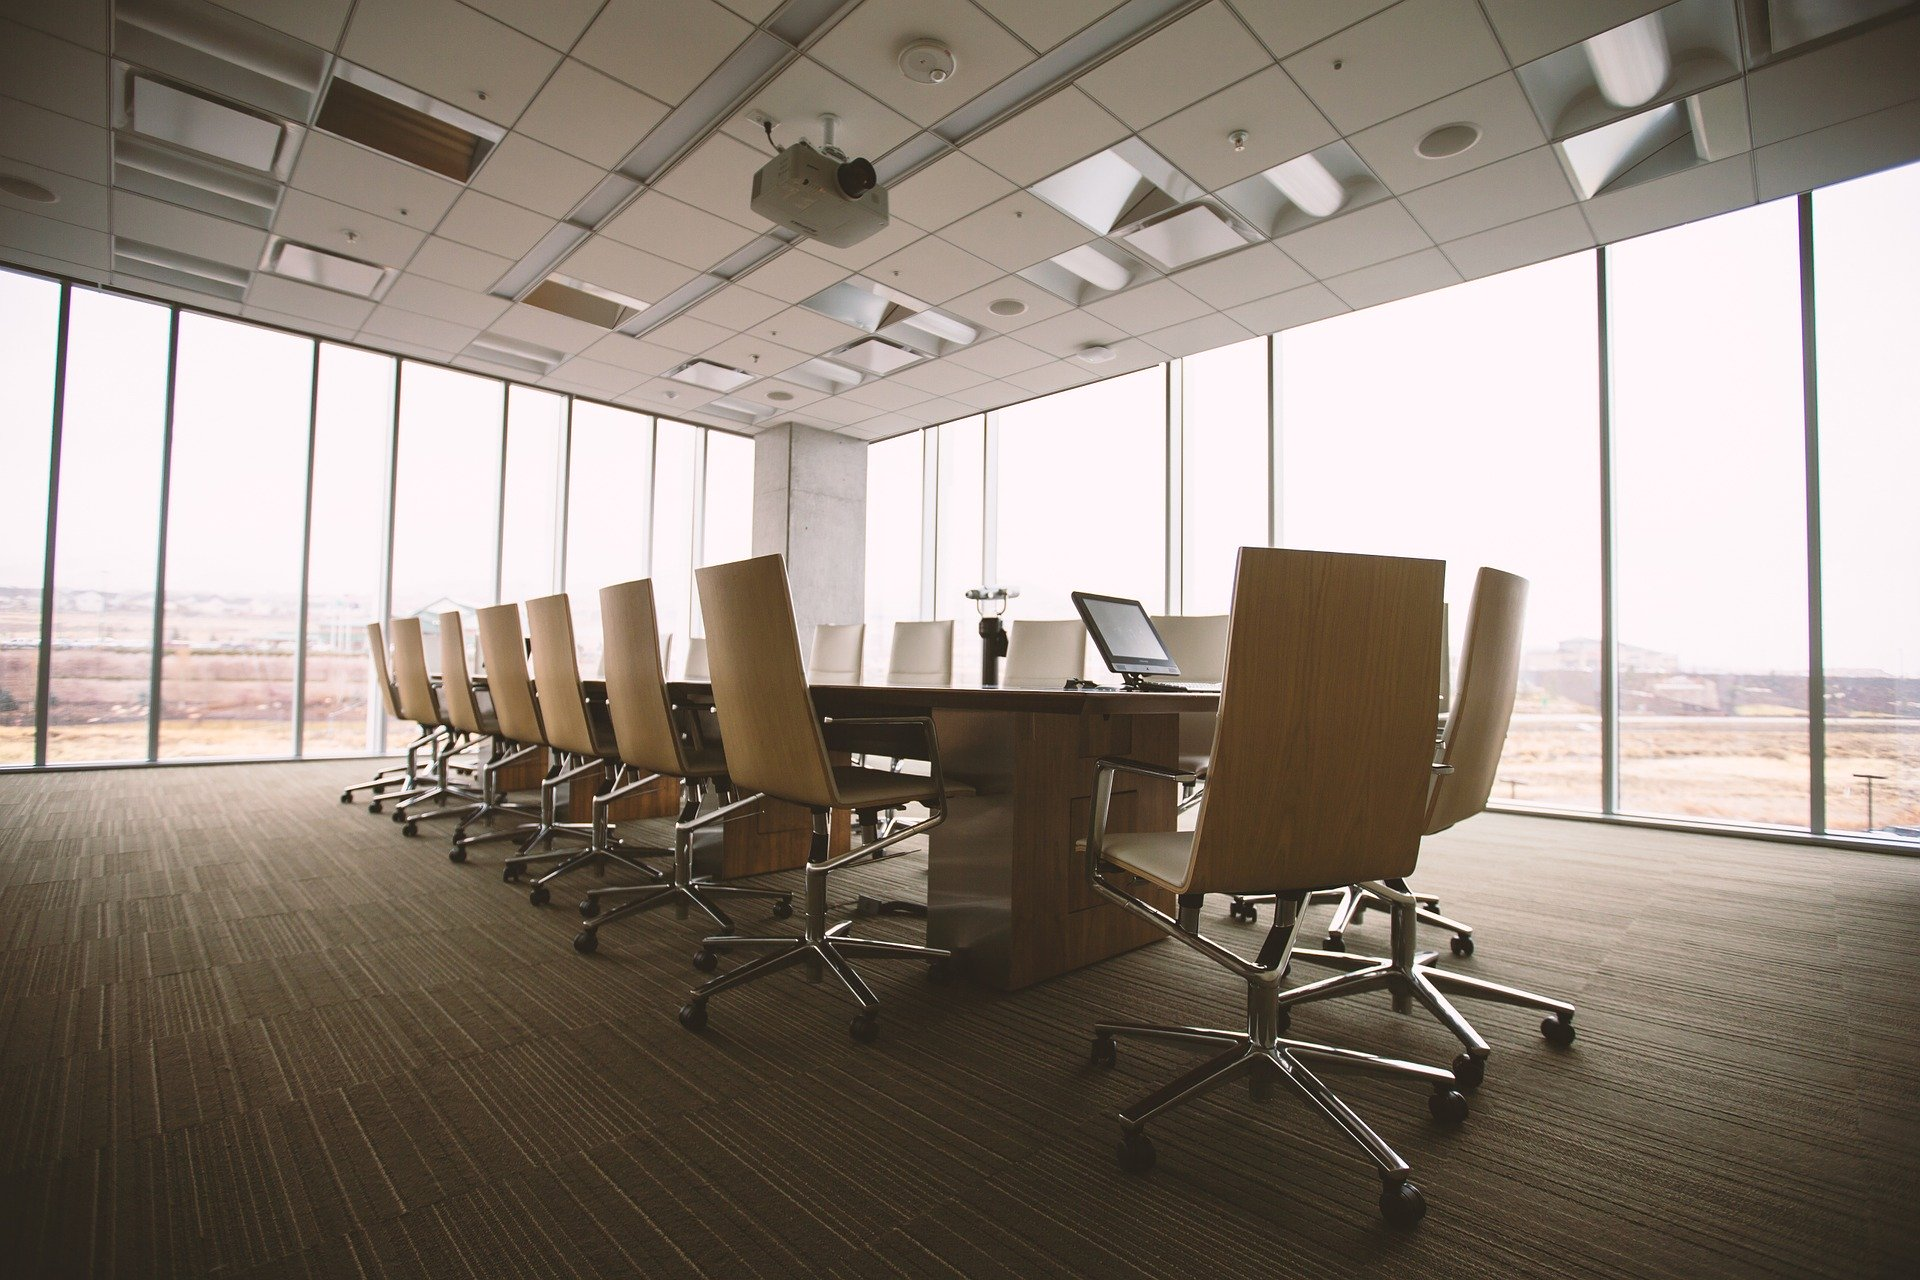 OFFICE CLEANING AND COMMERCIAL PREMISES